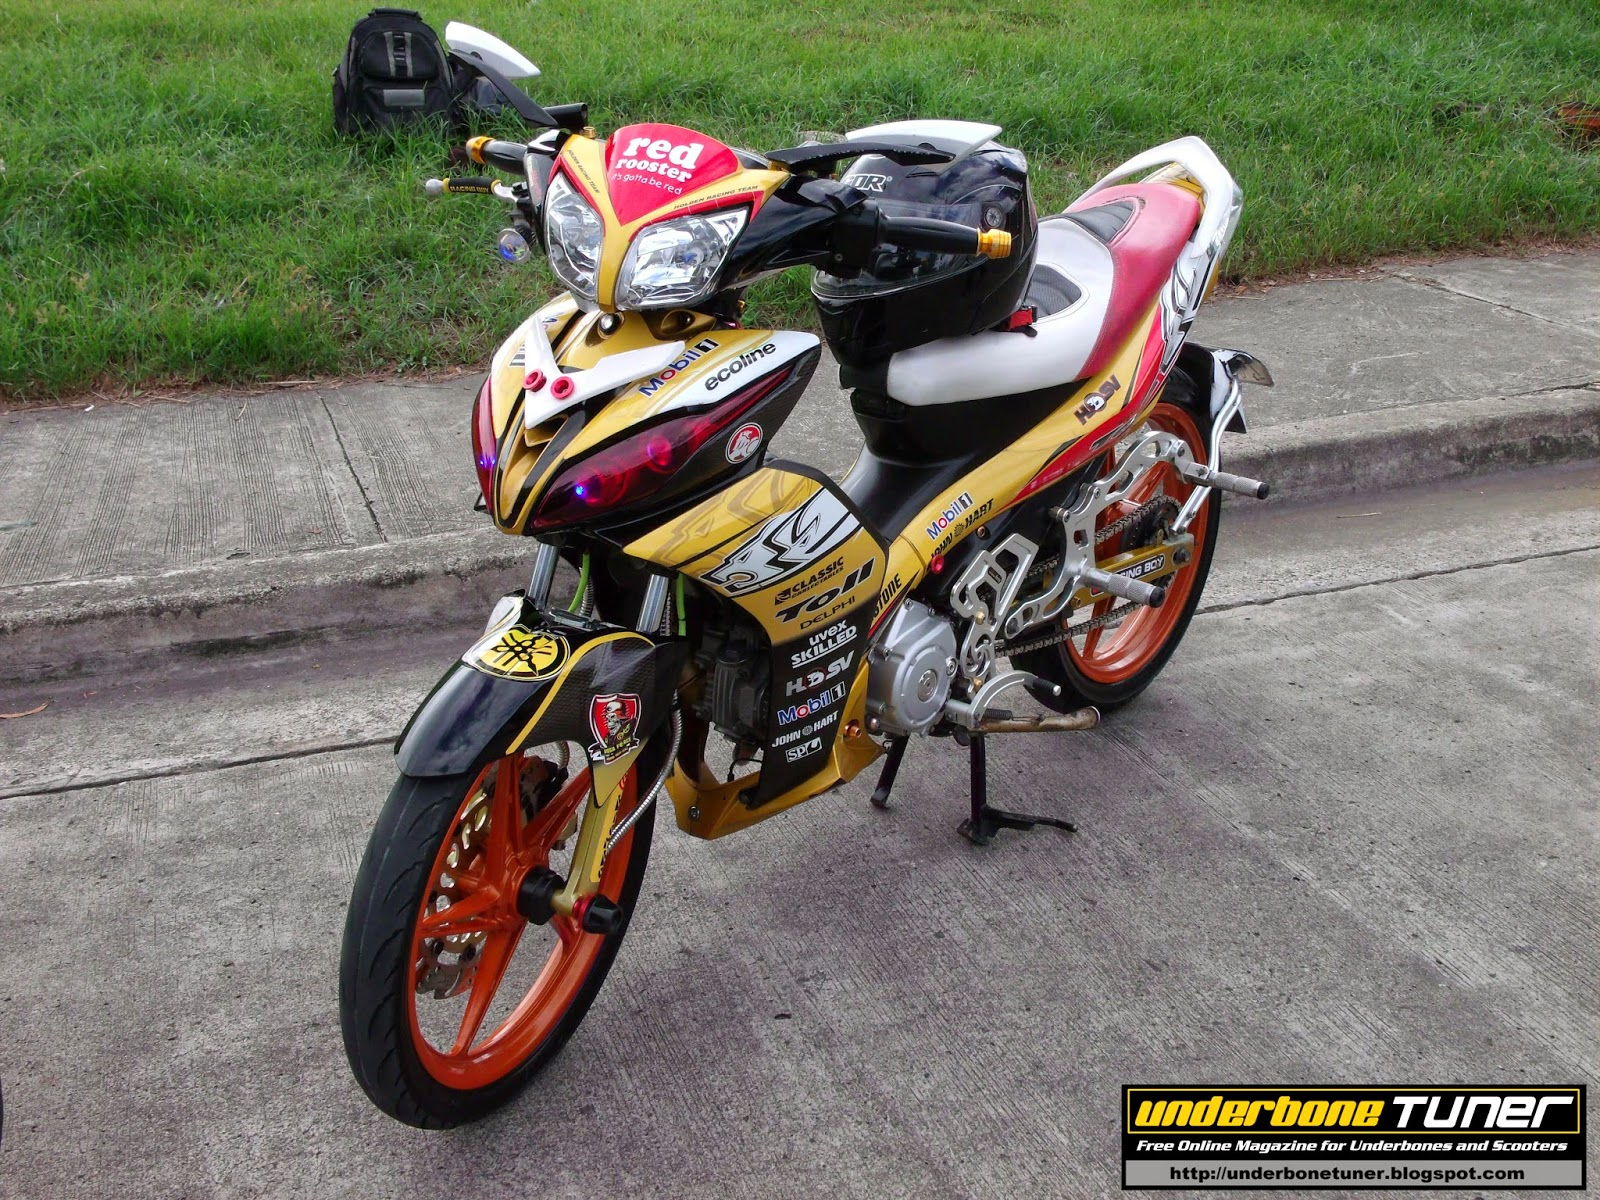 Underbone Tuner: Modified Bikes: MotoGp Inspired Yamaha